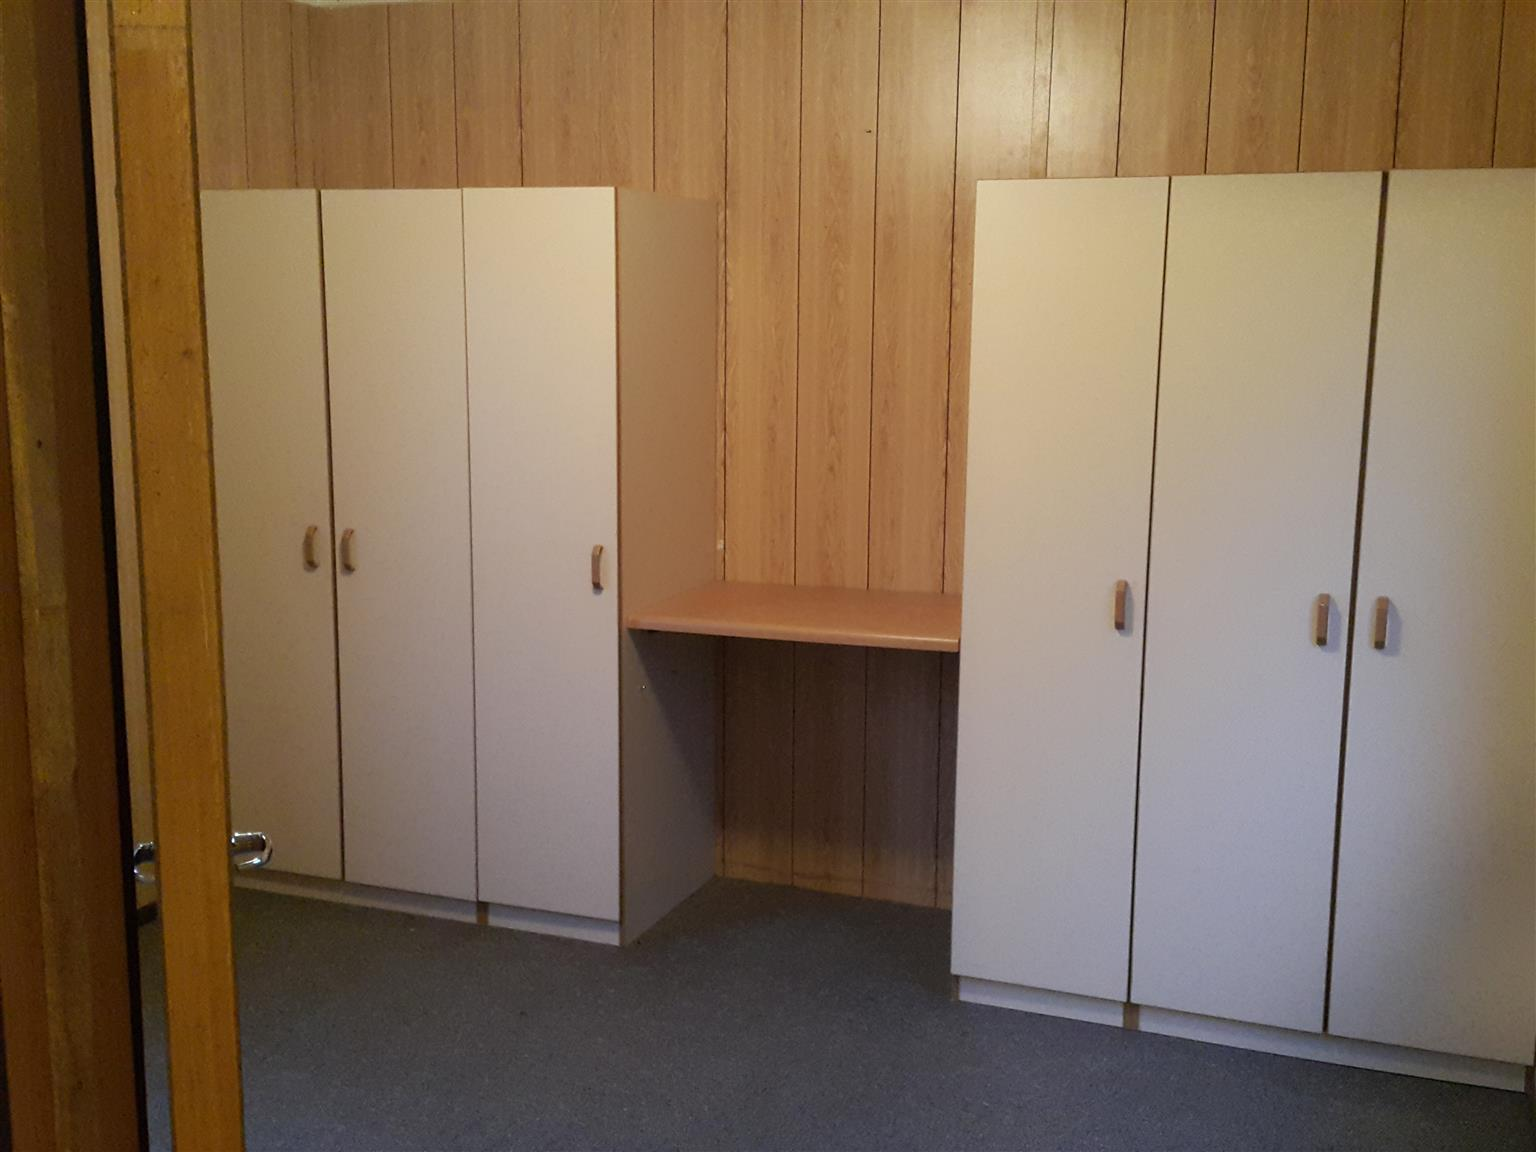 Mobile Home up for sale can be used as an office or home,17.42mx3.58m.